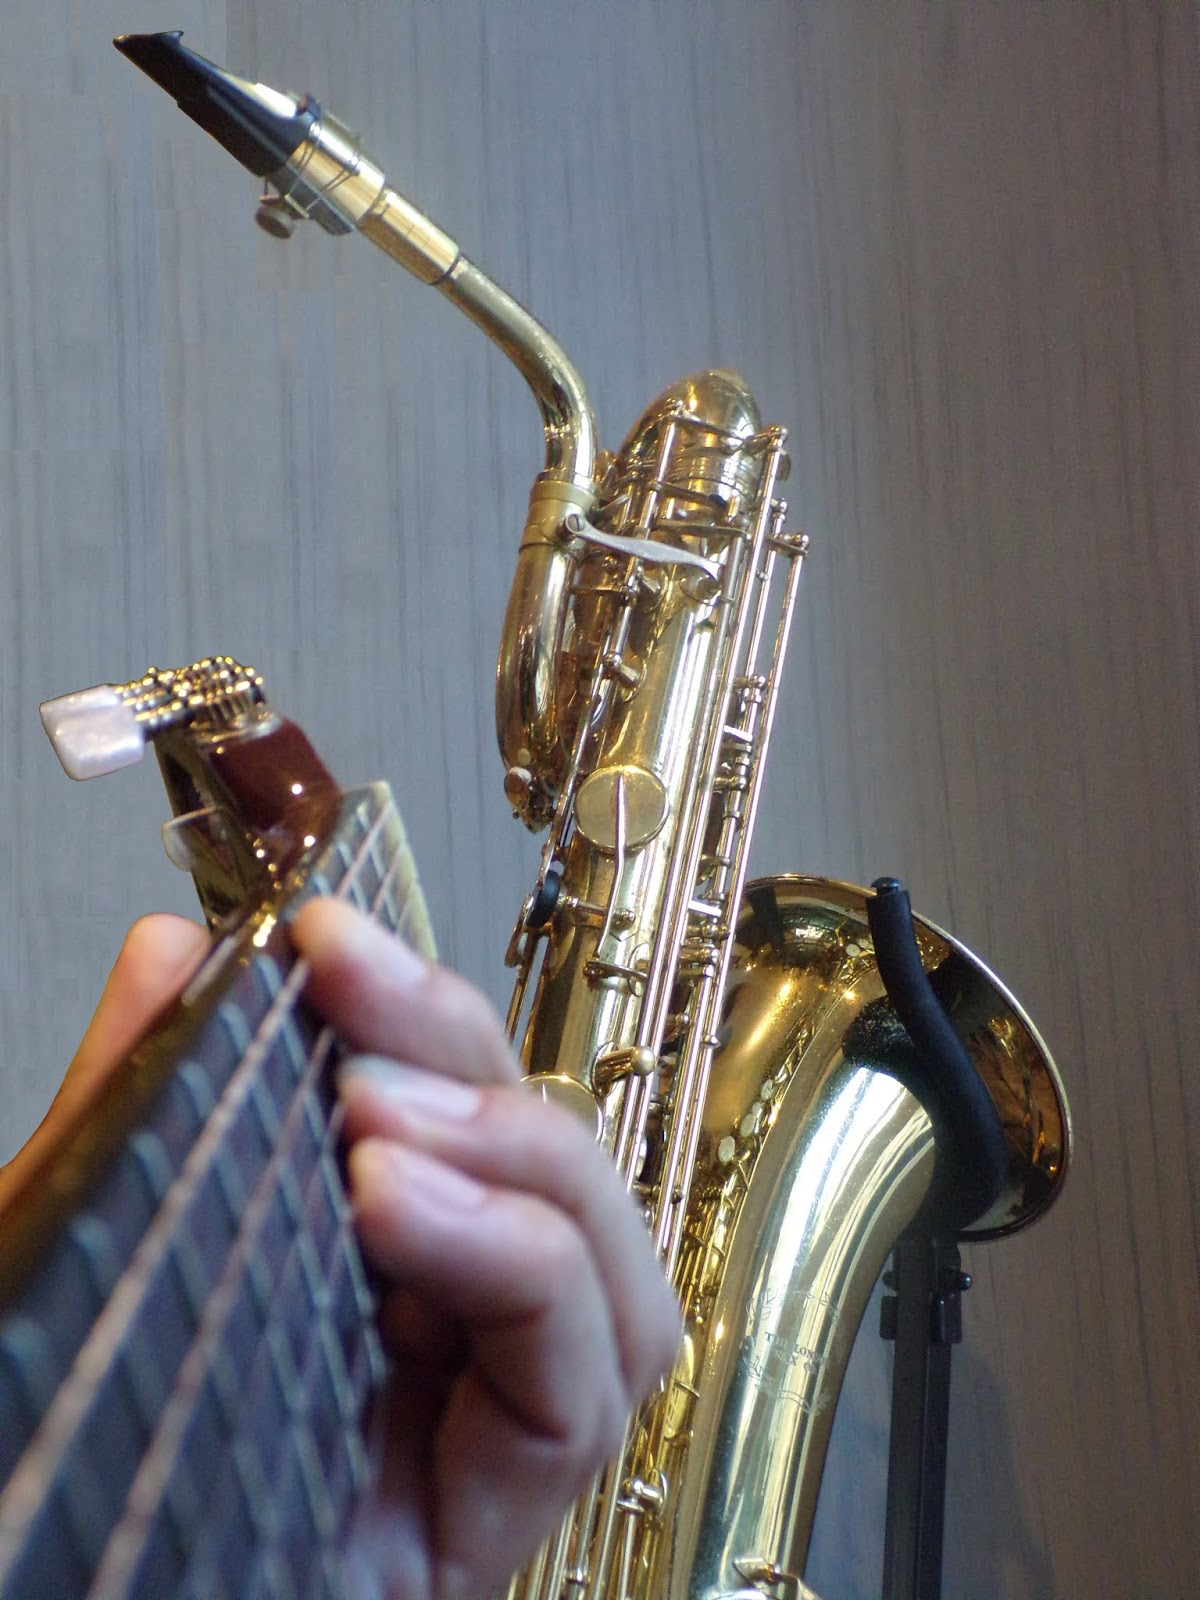 The Sound Image Blog: Guitar and Baritone Sax-Clarinet-Flute Duo